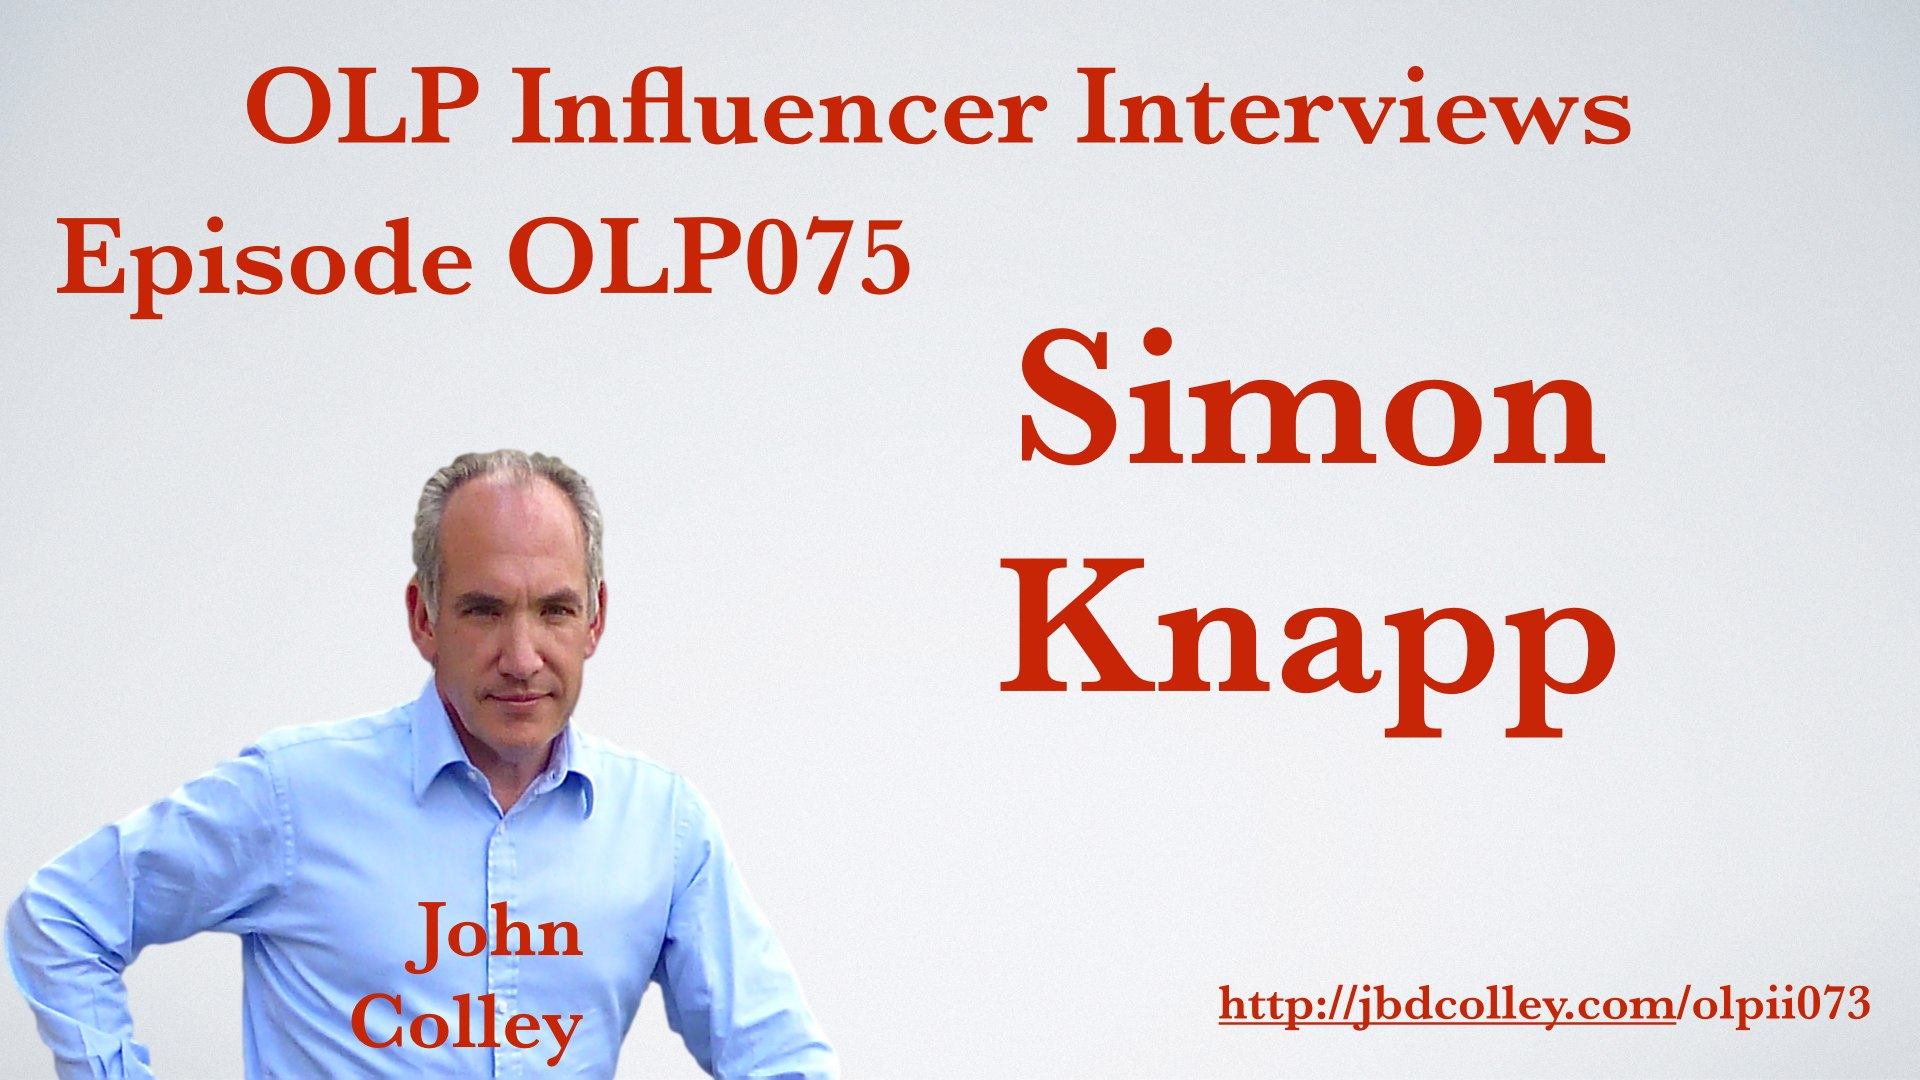 OLPII075 Simon Knapp from the Cherished Ideas Podcast interviews The Six Minute Strategist